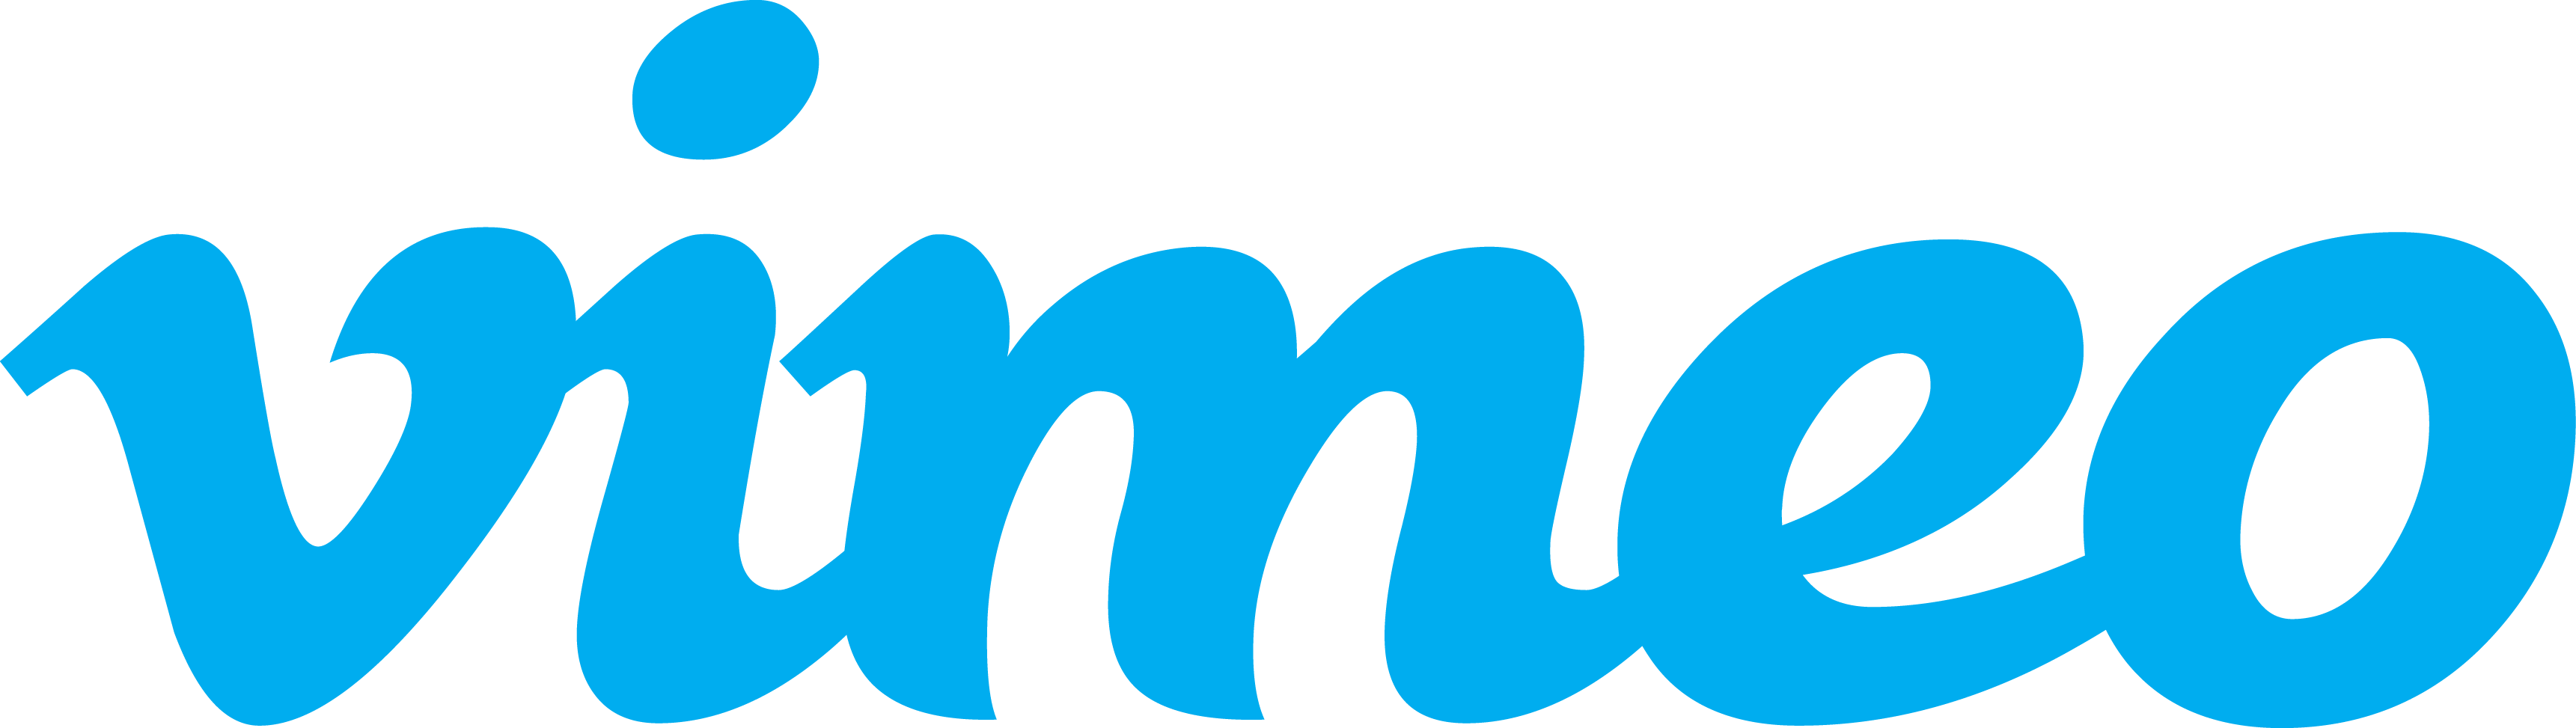 Logo do Vimeo